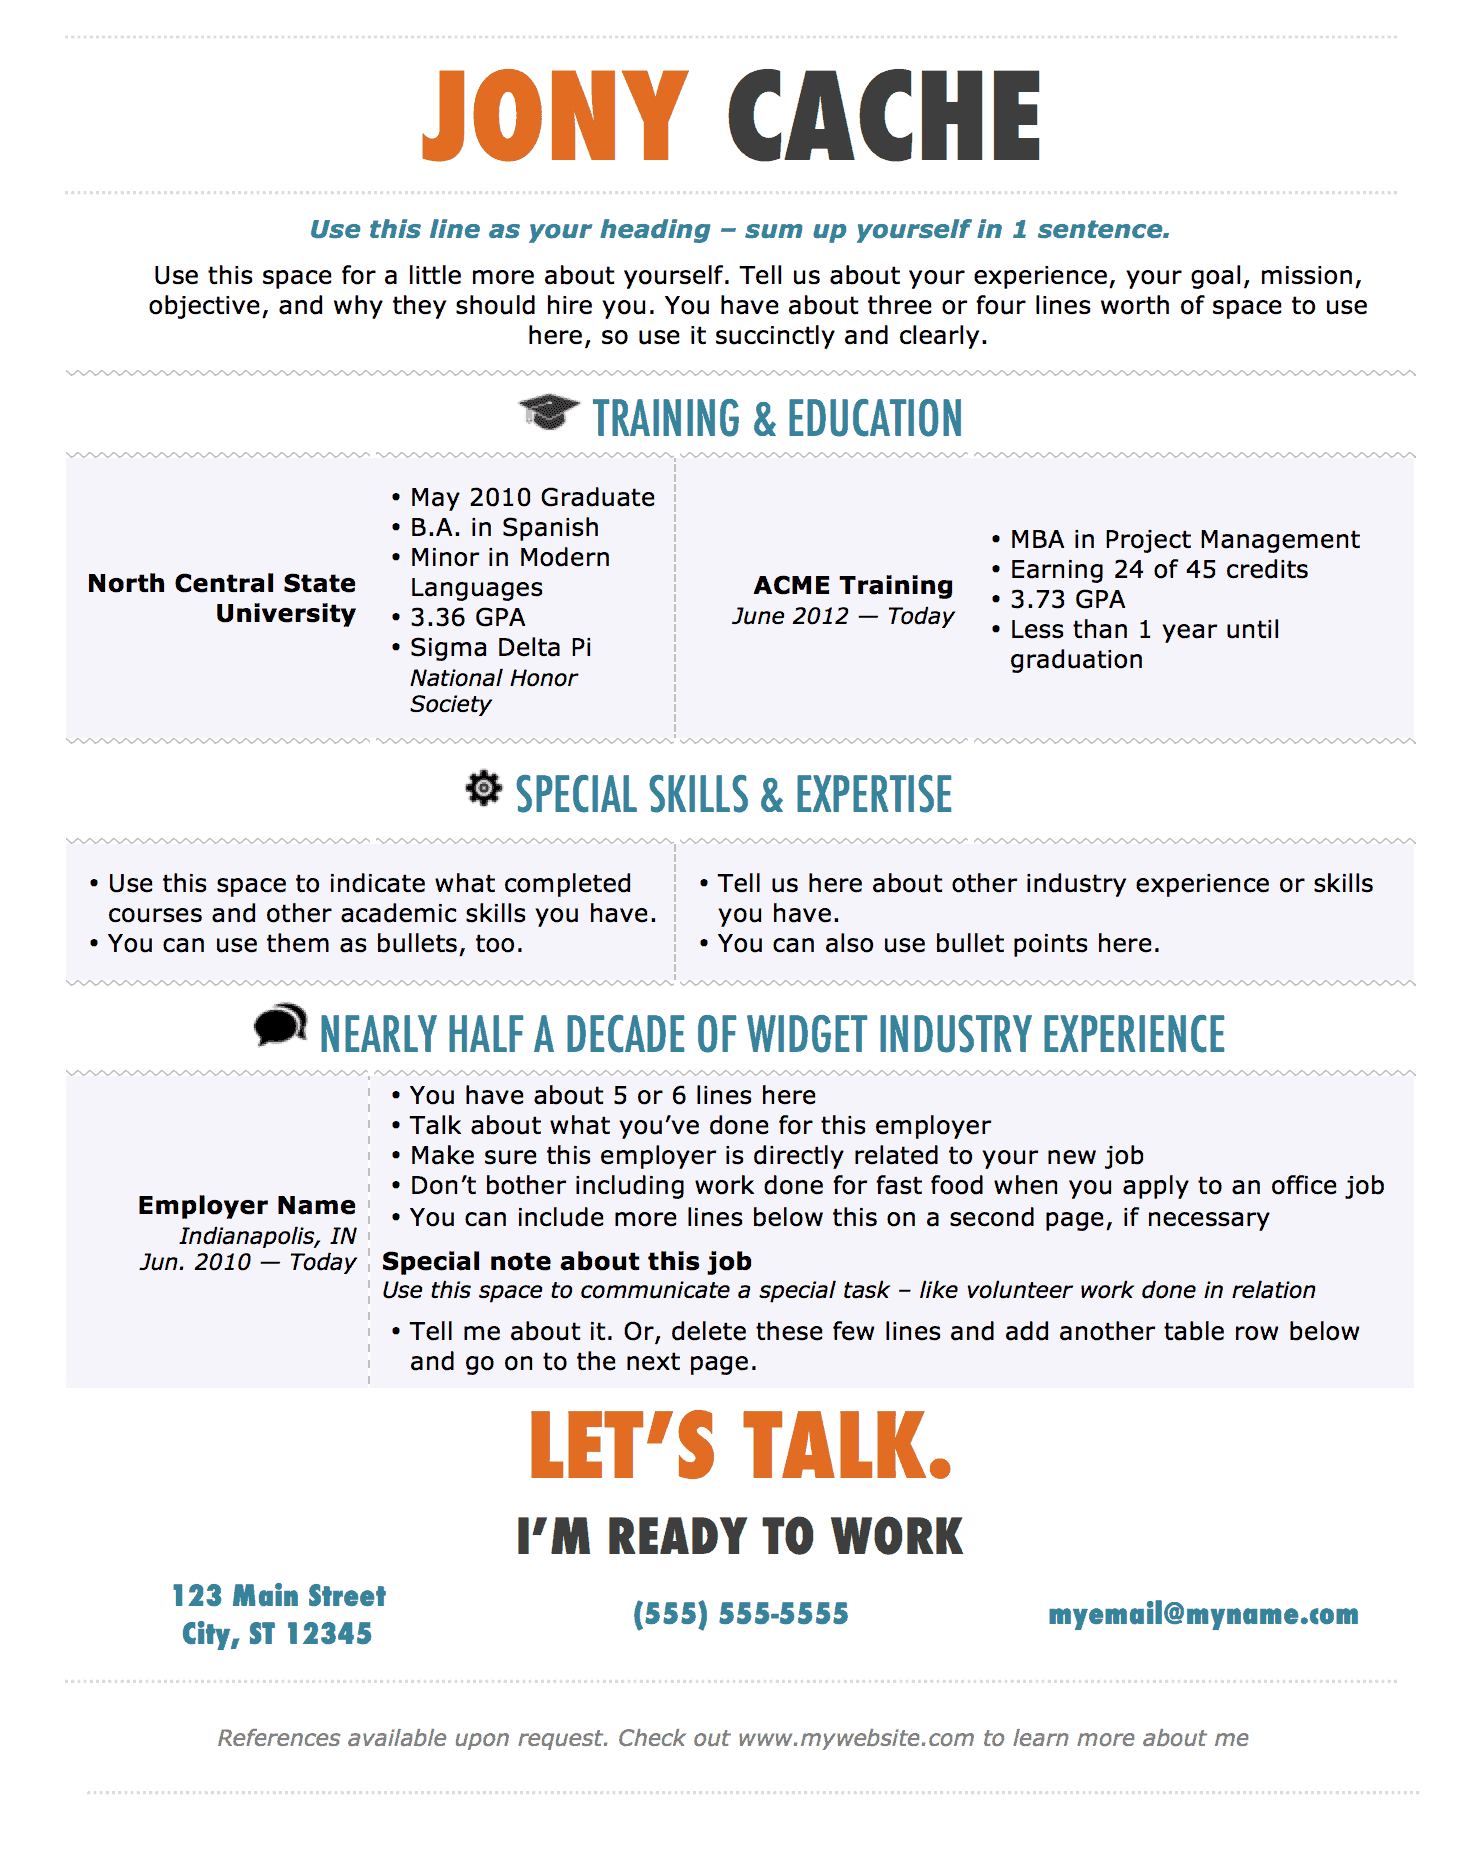 Modern Resume Template for Microsoft Word — SuperPixel: superpixel.co/store/modern-resume-template-microsoft-word/?add-to...